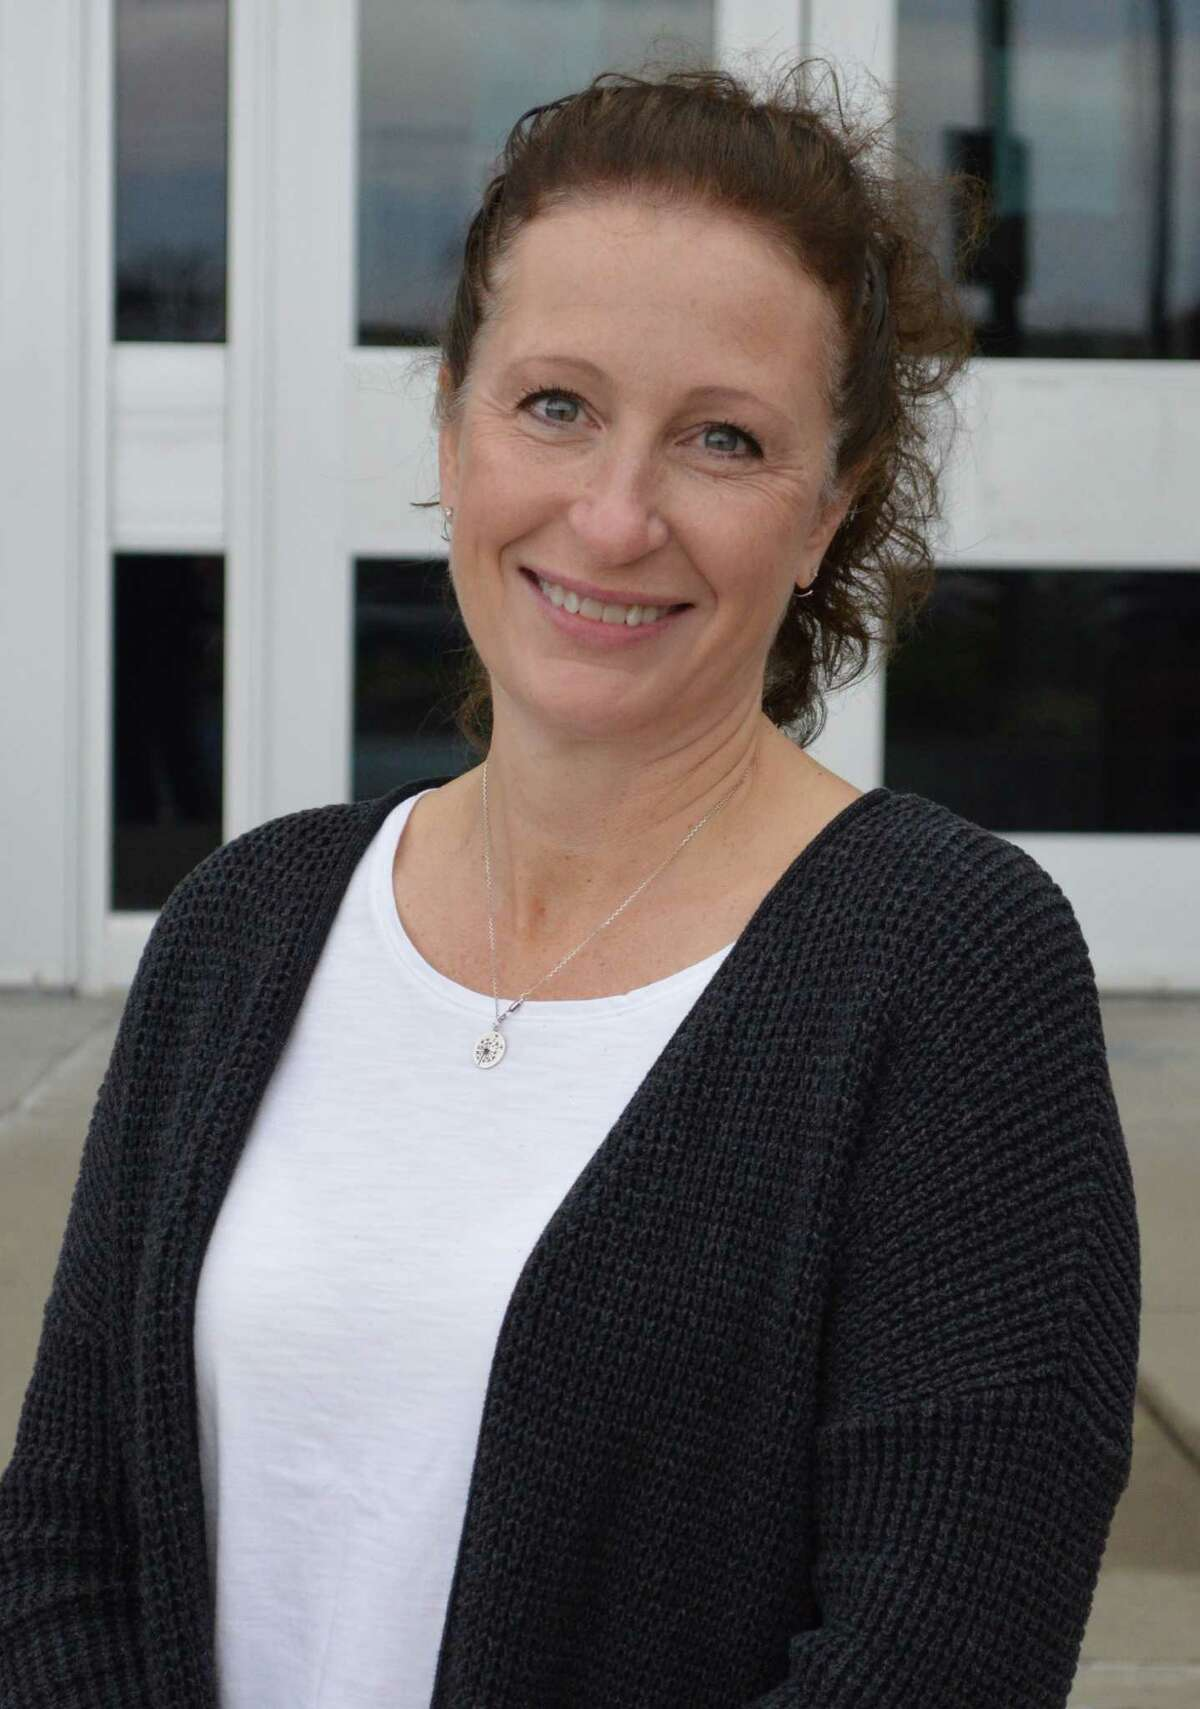 Karen Vincent is the new COVID-19 Coordinator for East Greenbush Central School District.